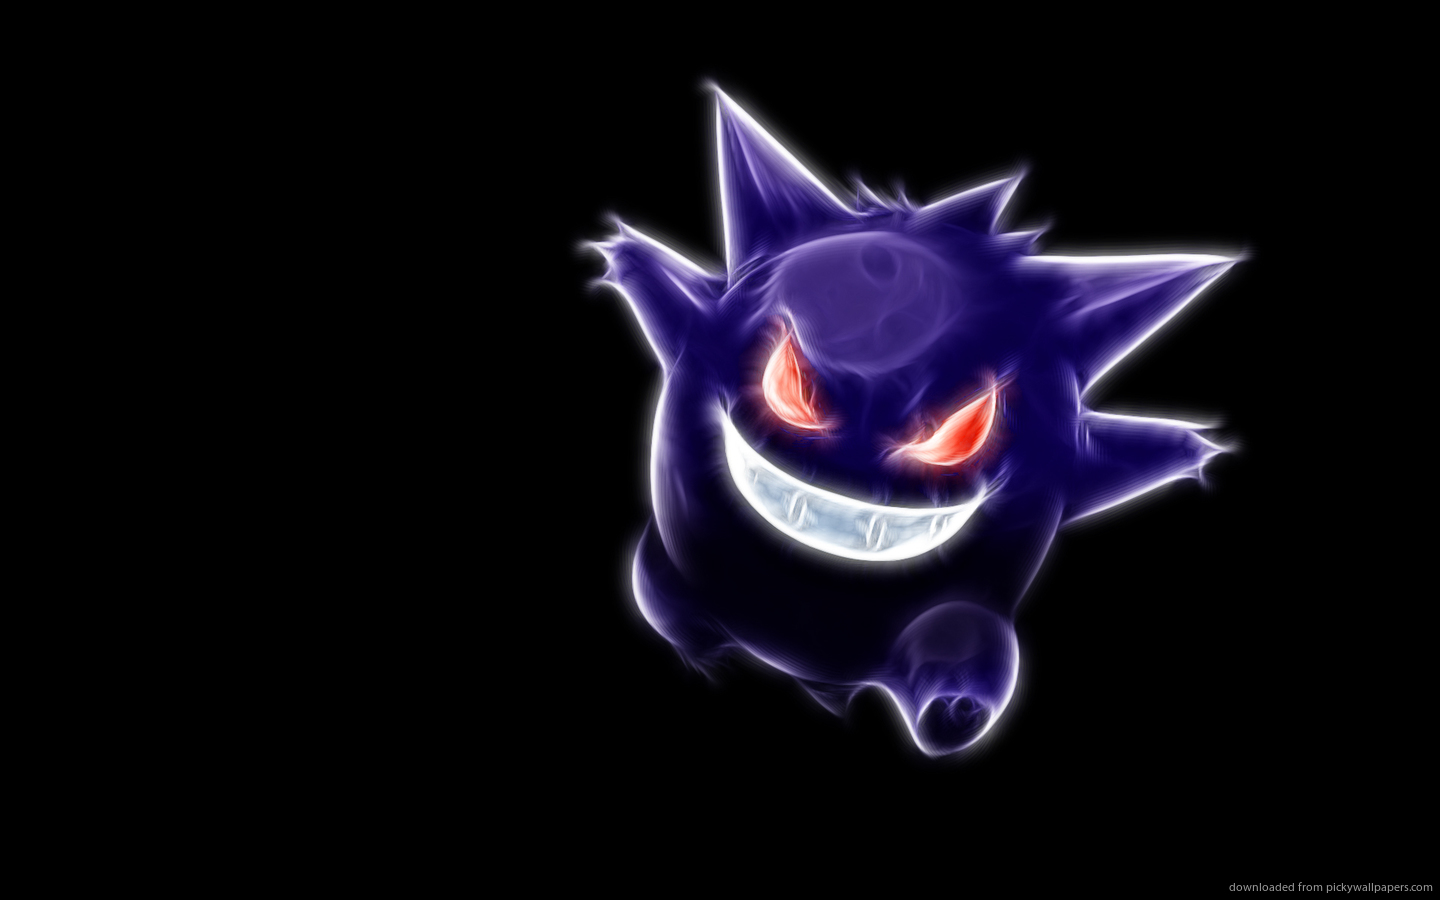 Neon Wallpapers for Android - Neon Gengar Wallpaper